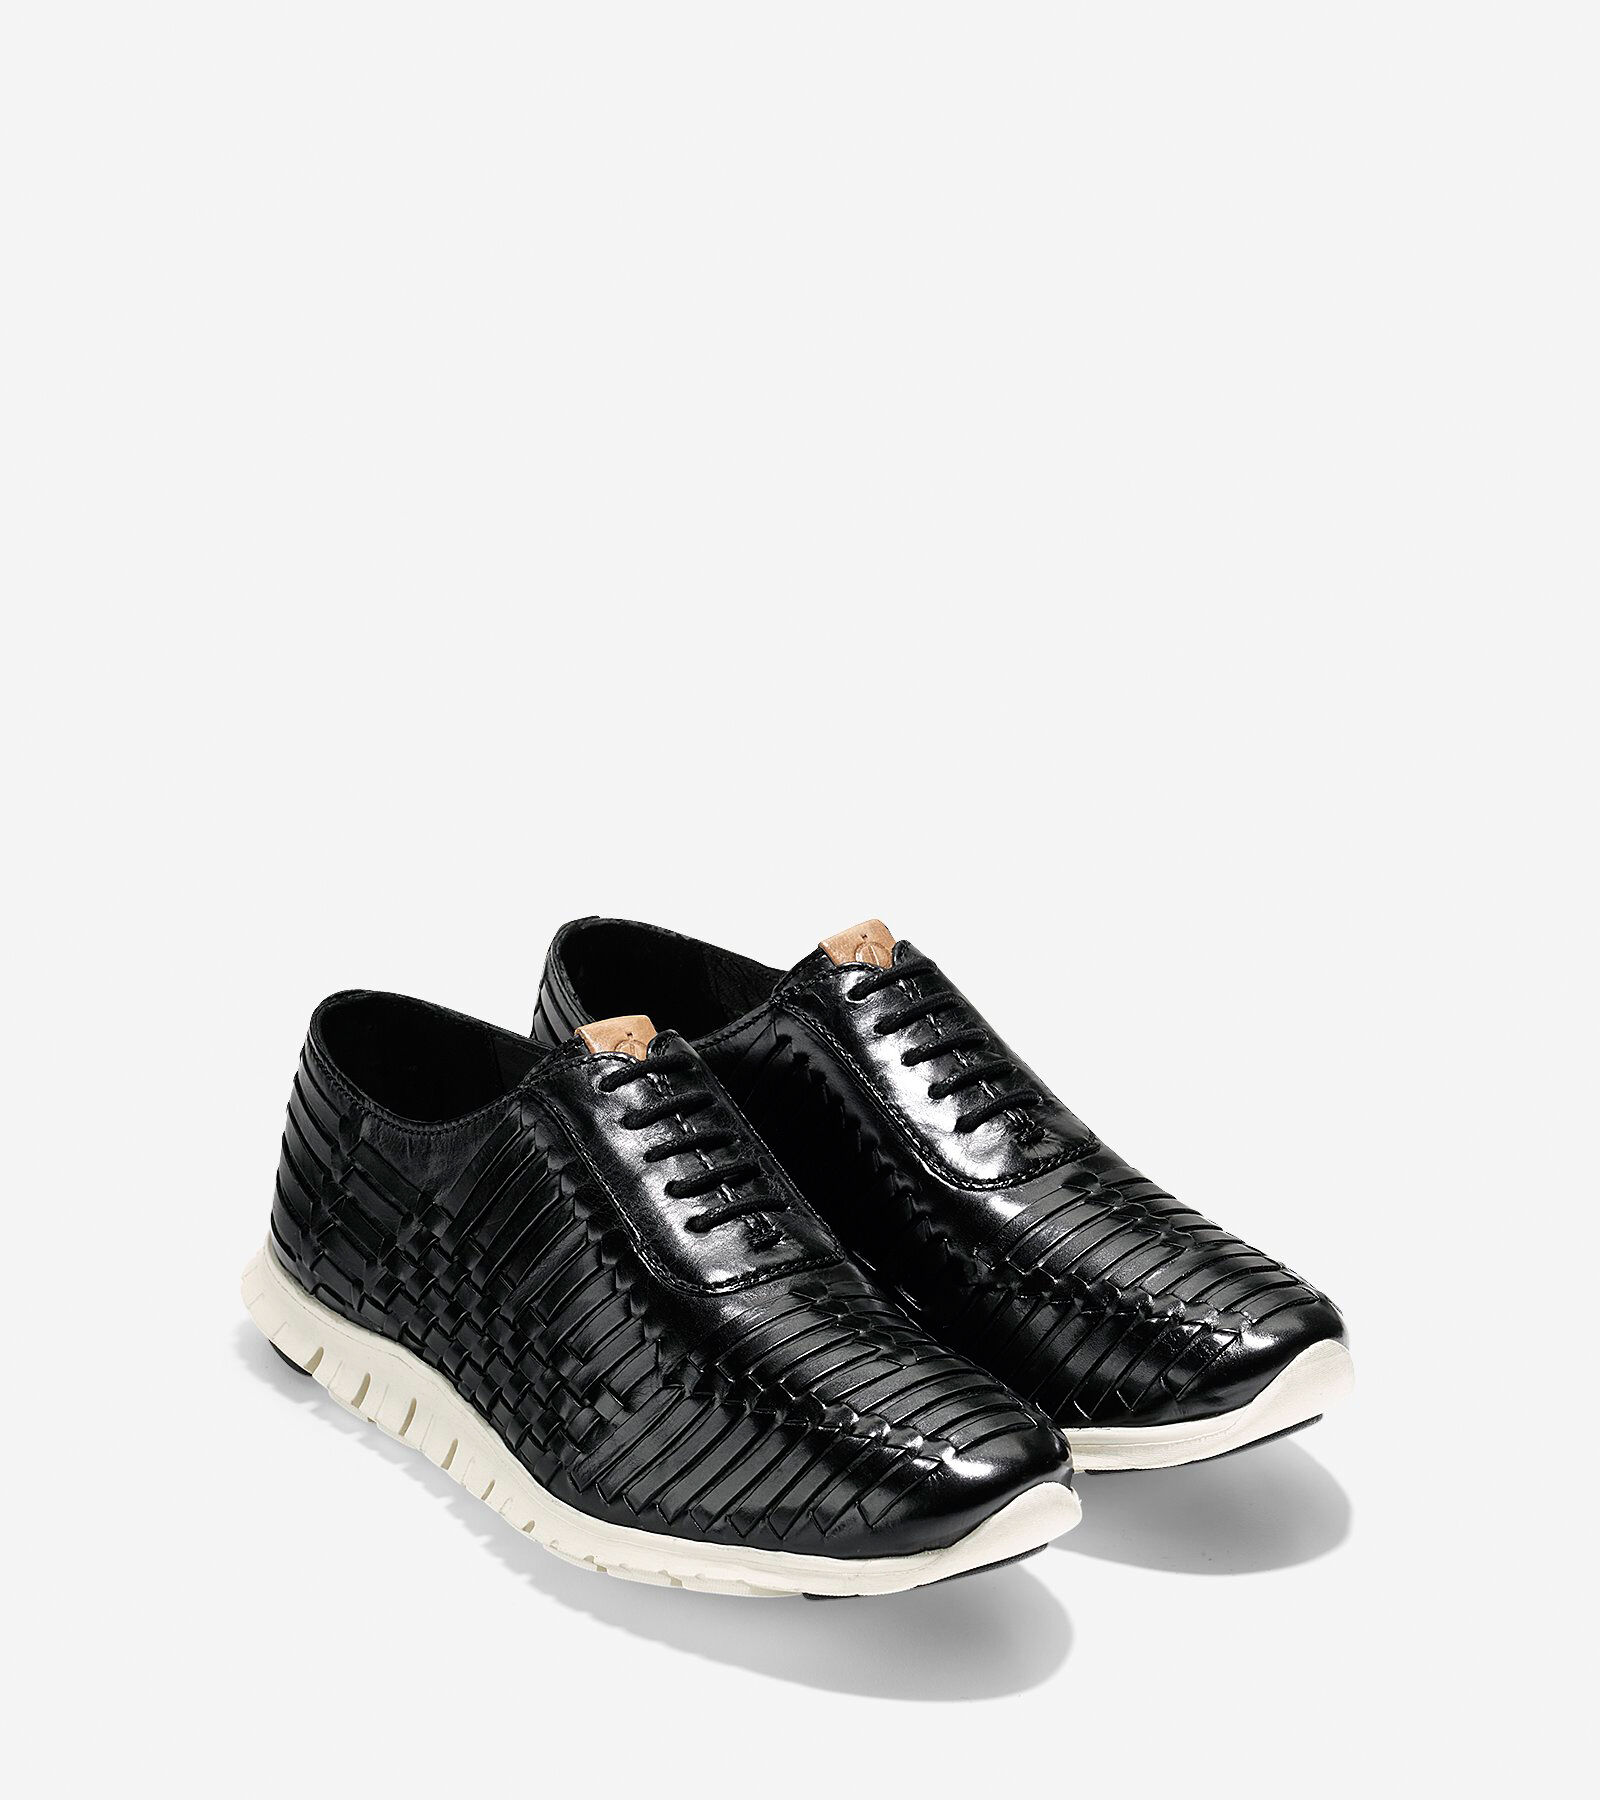 ... Women's ZERØGRAND Huarache Oxford; Women's ZERØGRAND Huarache Oxford. # colehaan